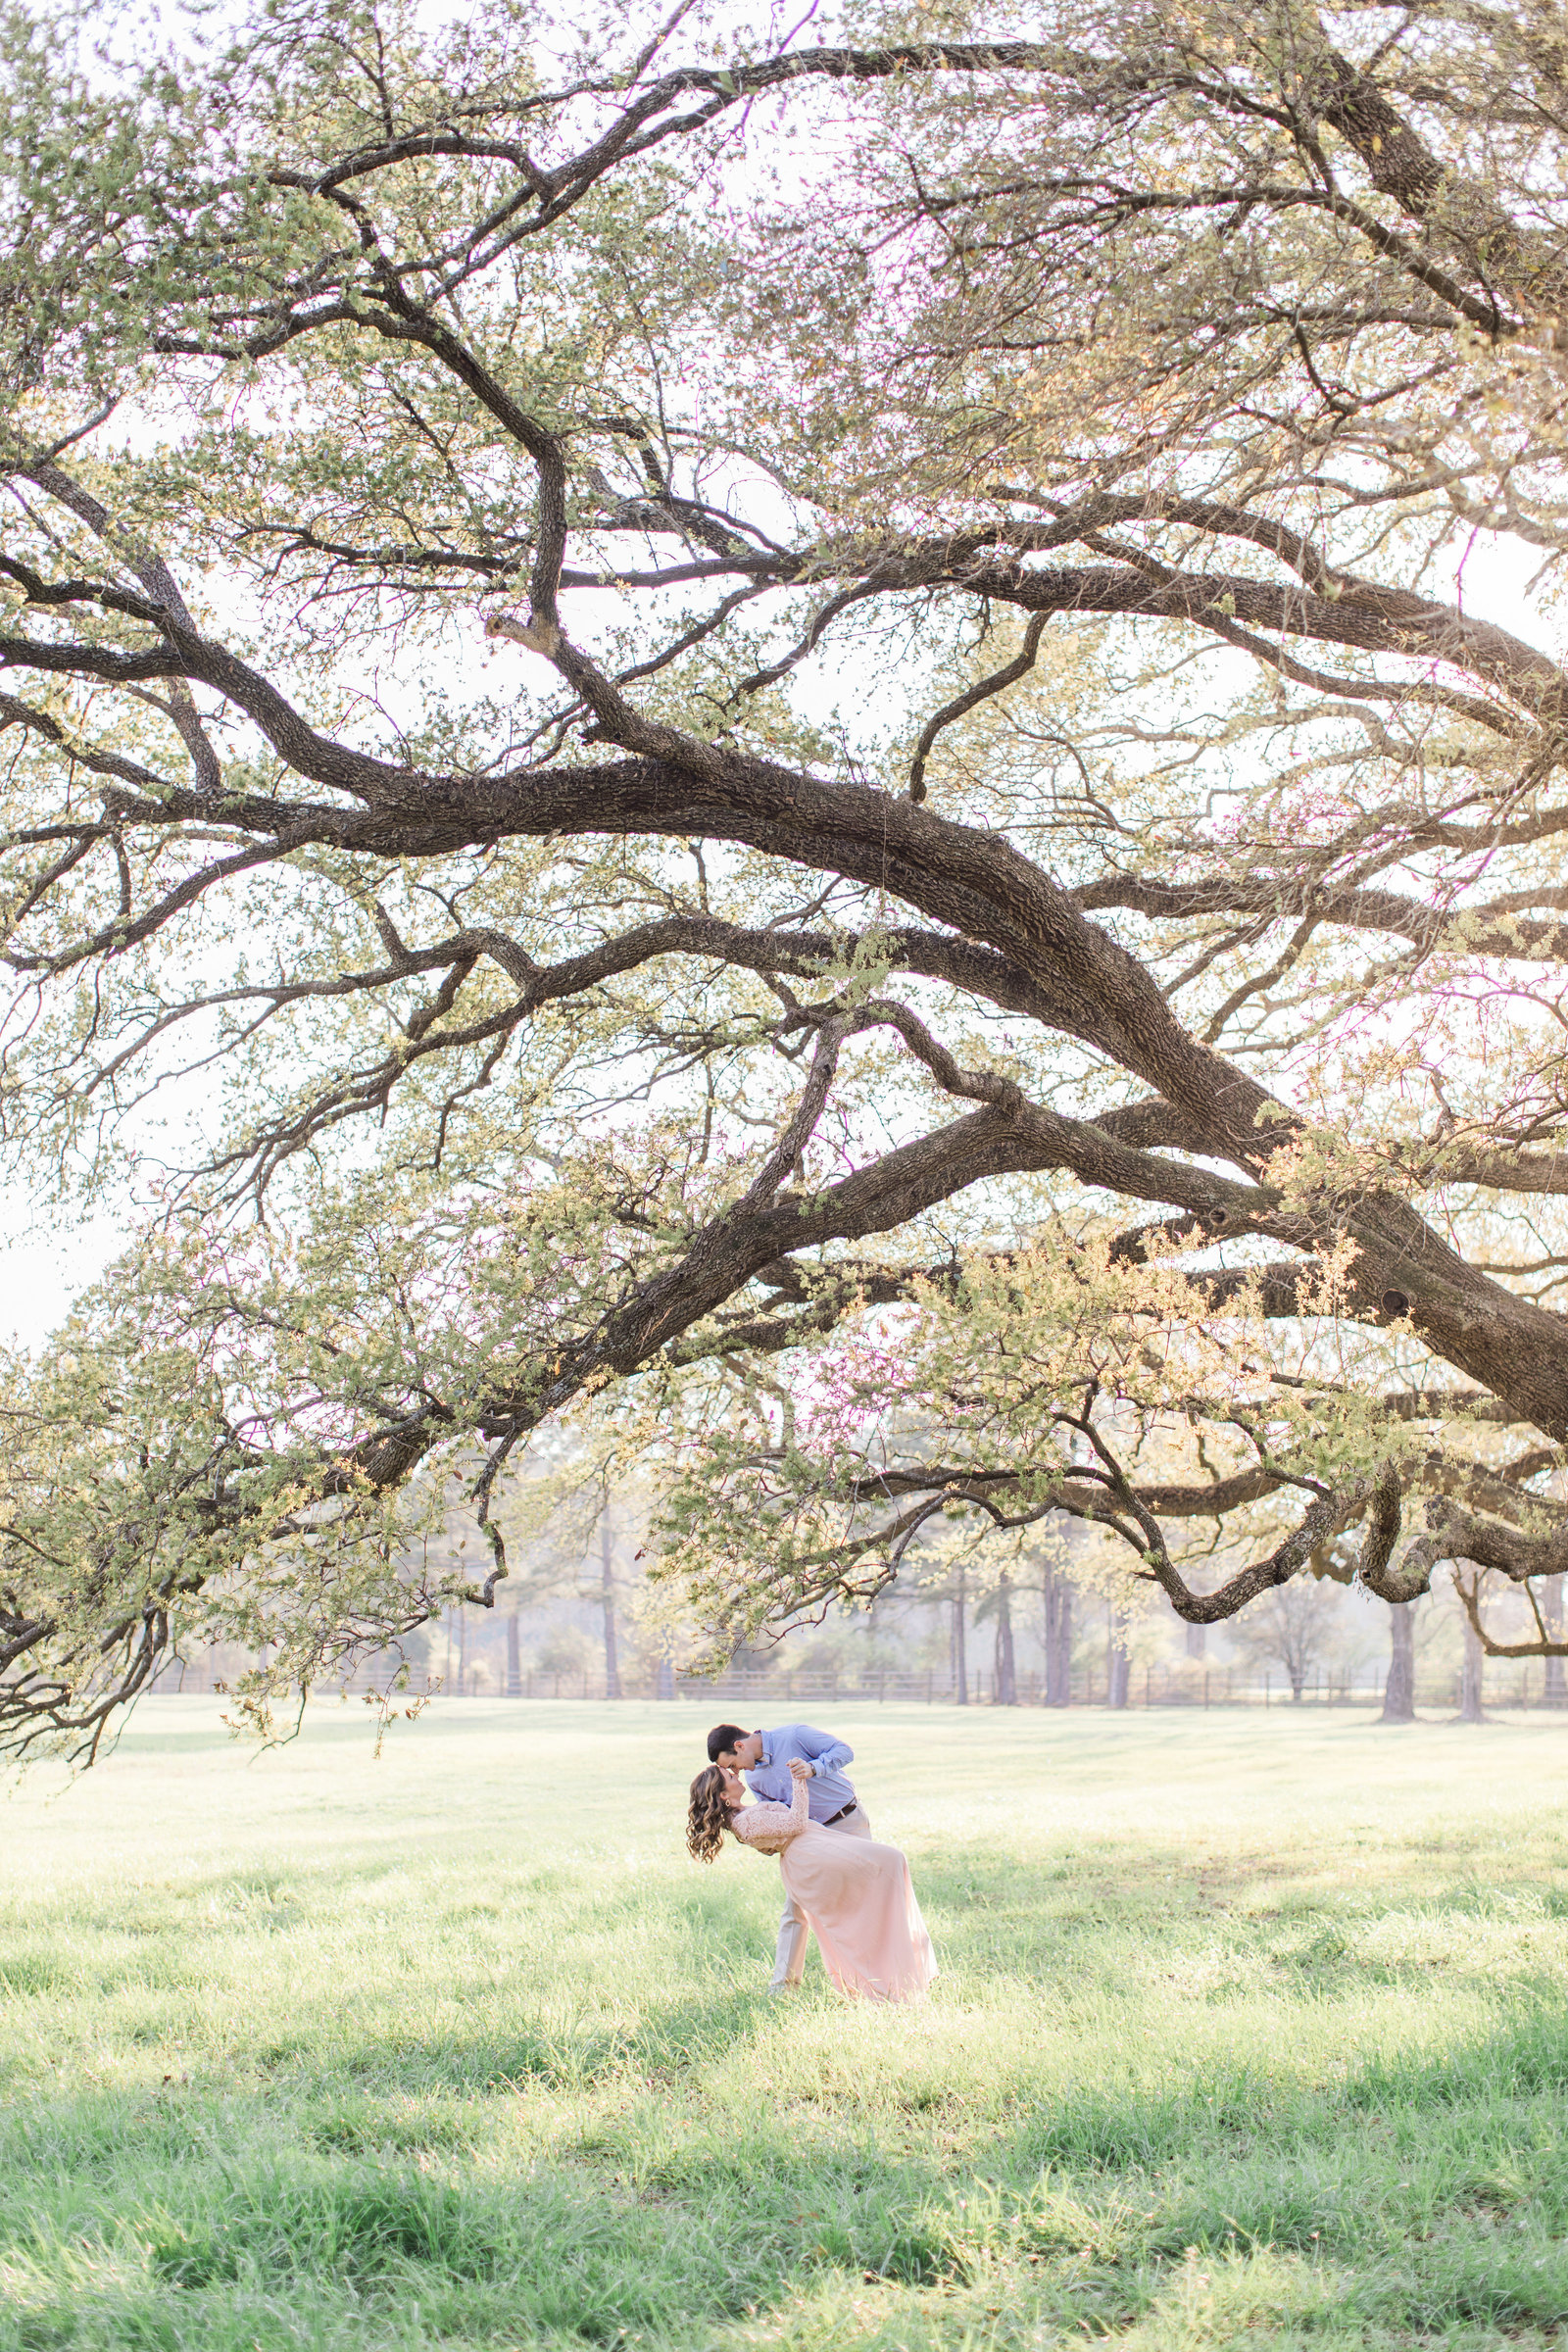 An Engaged Couple Under an Oak Tree